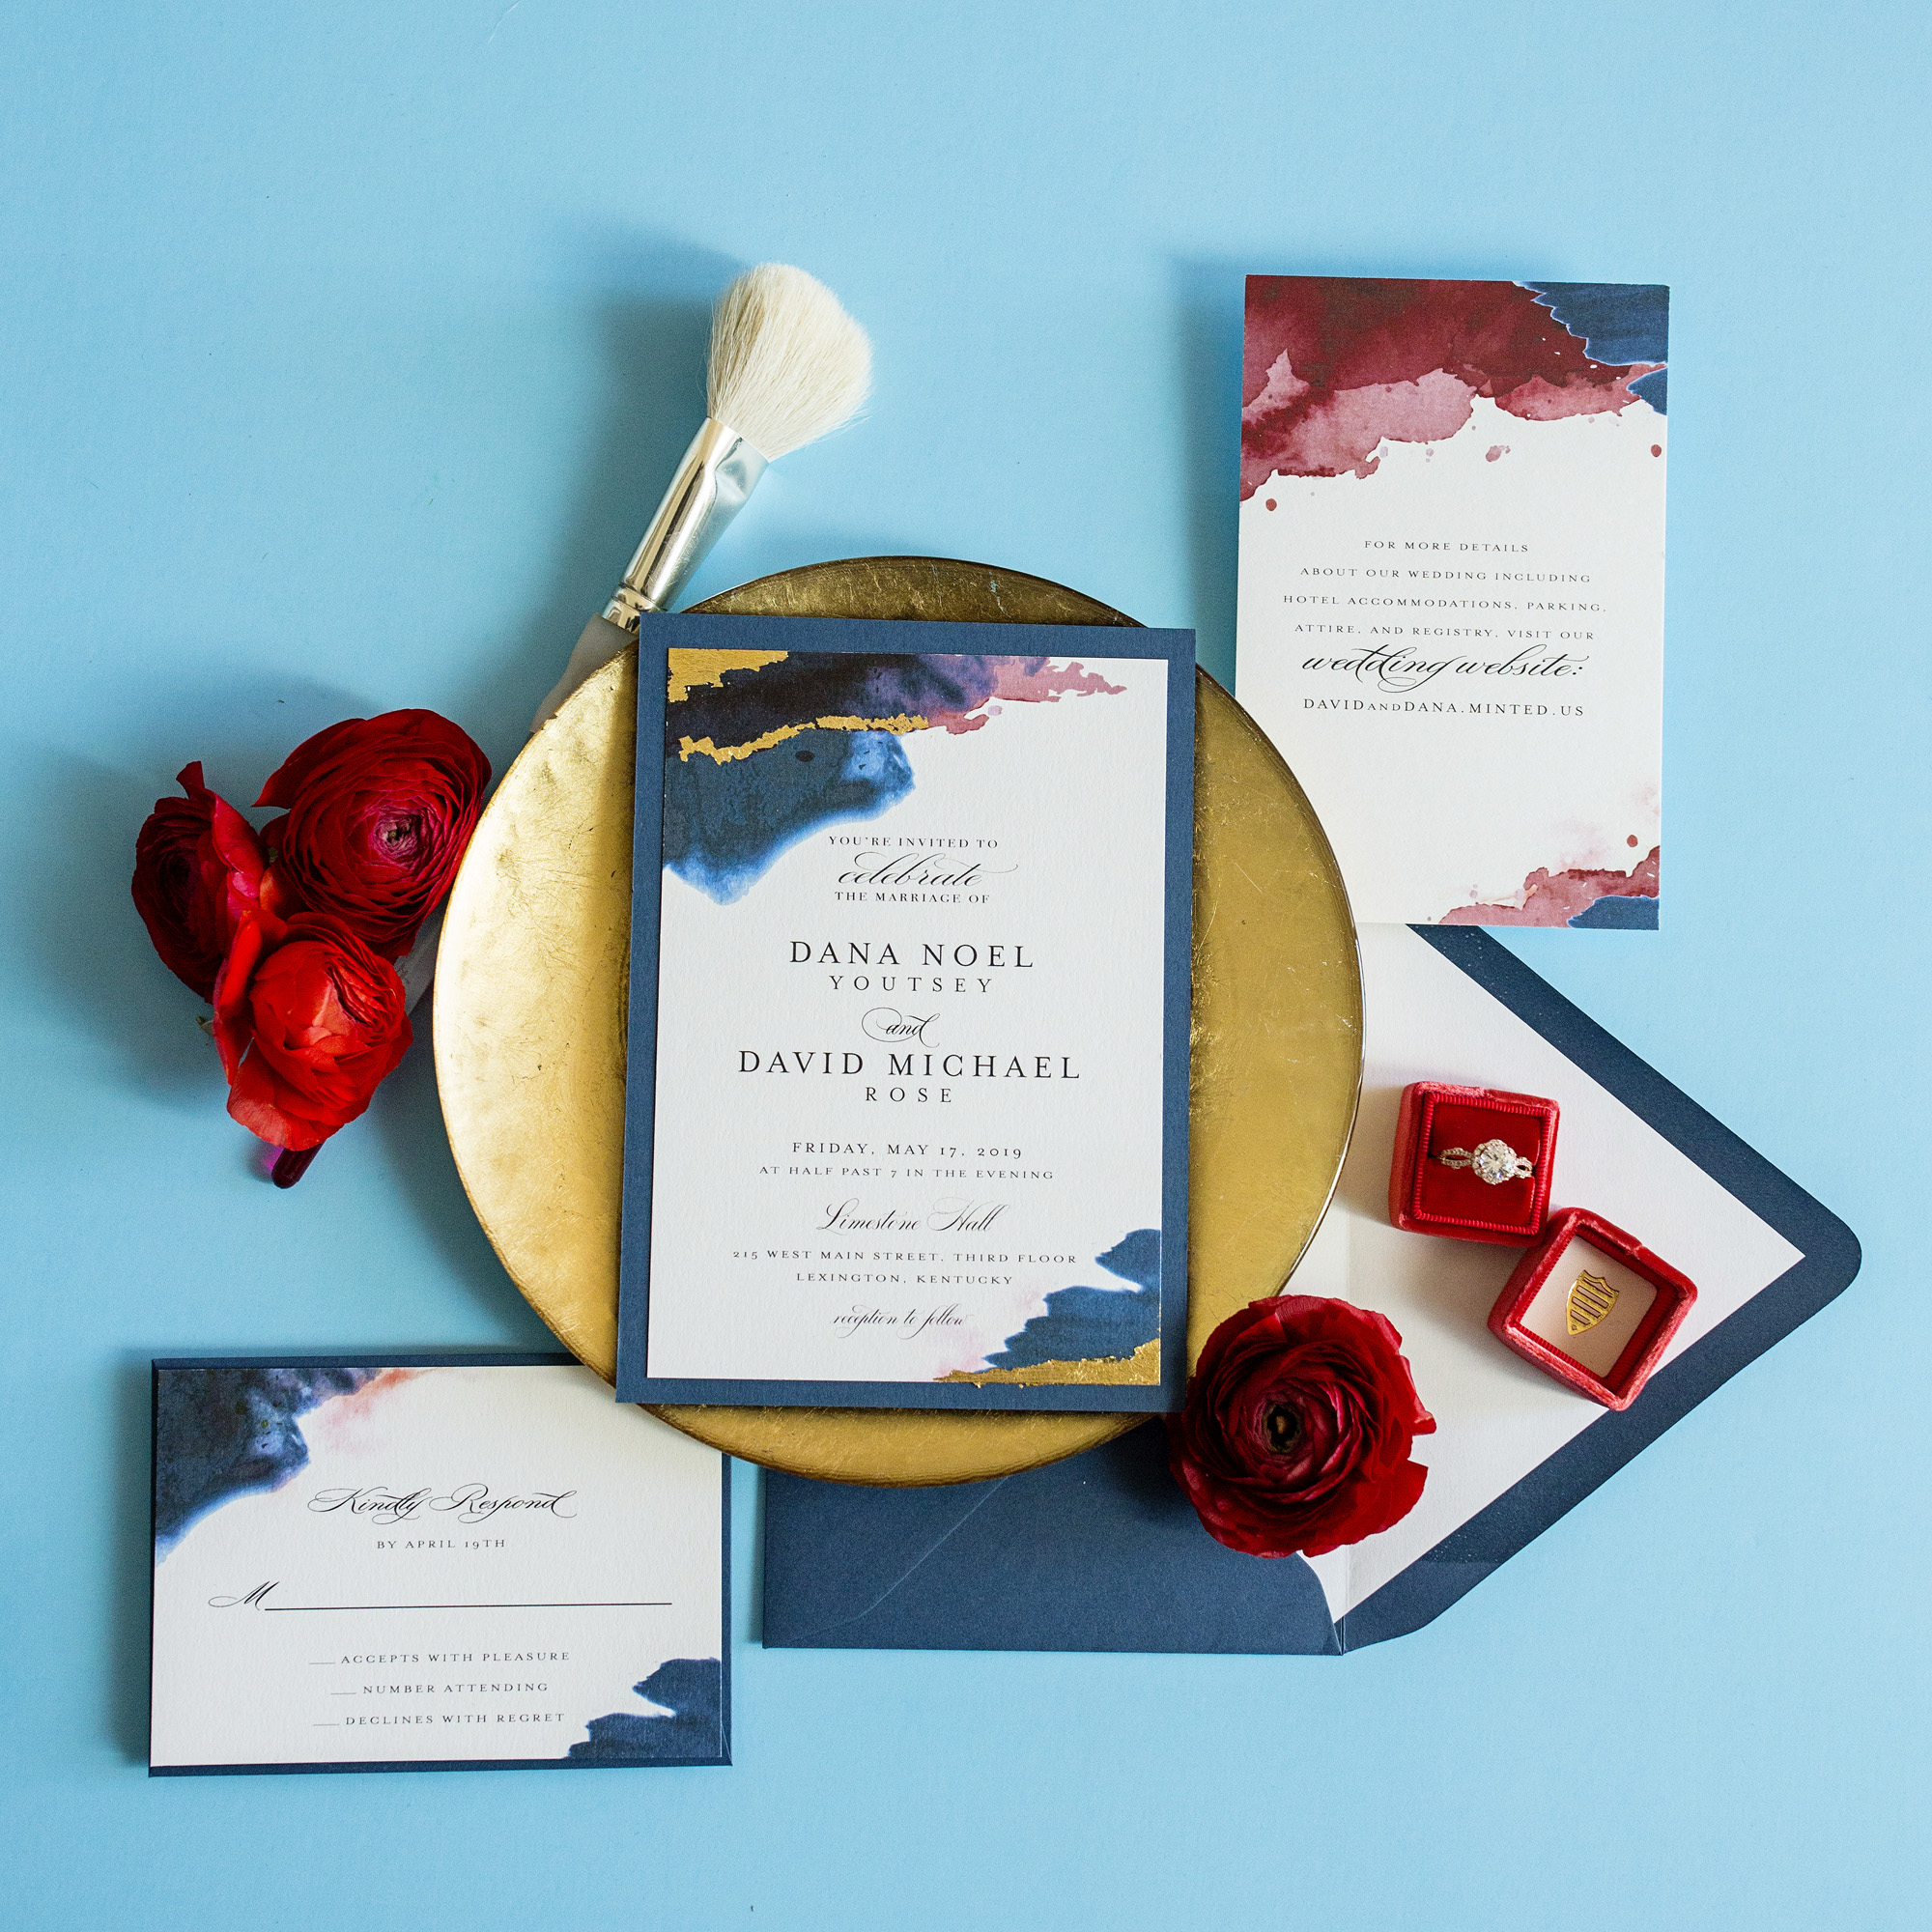 Seriously_Sabrina_Photography_Commercial_Simply_Done_Invites_2019_March_008